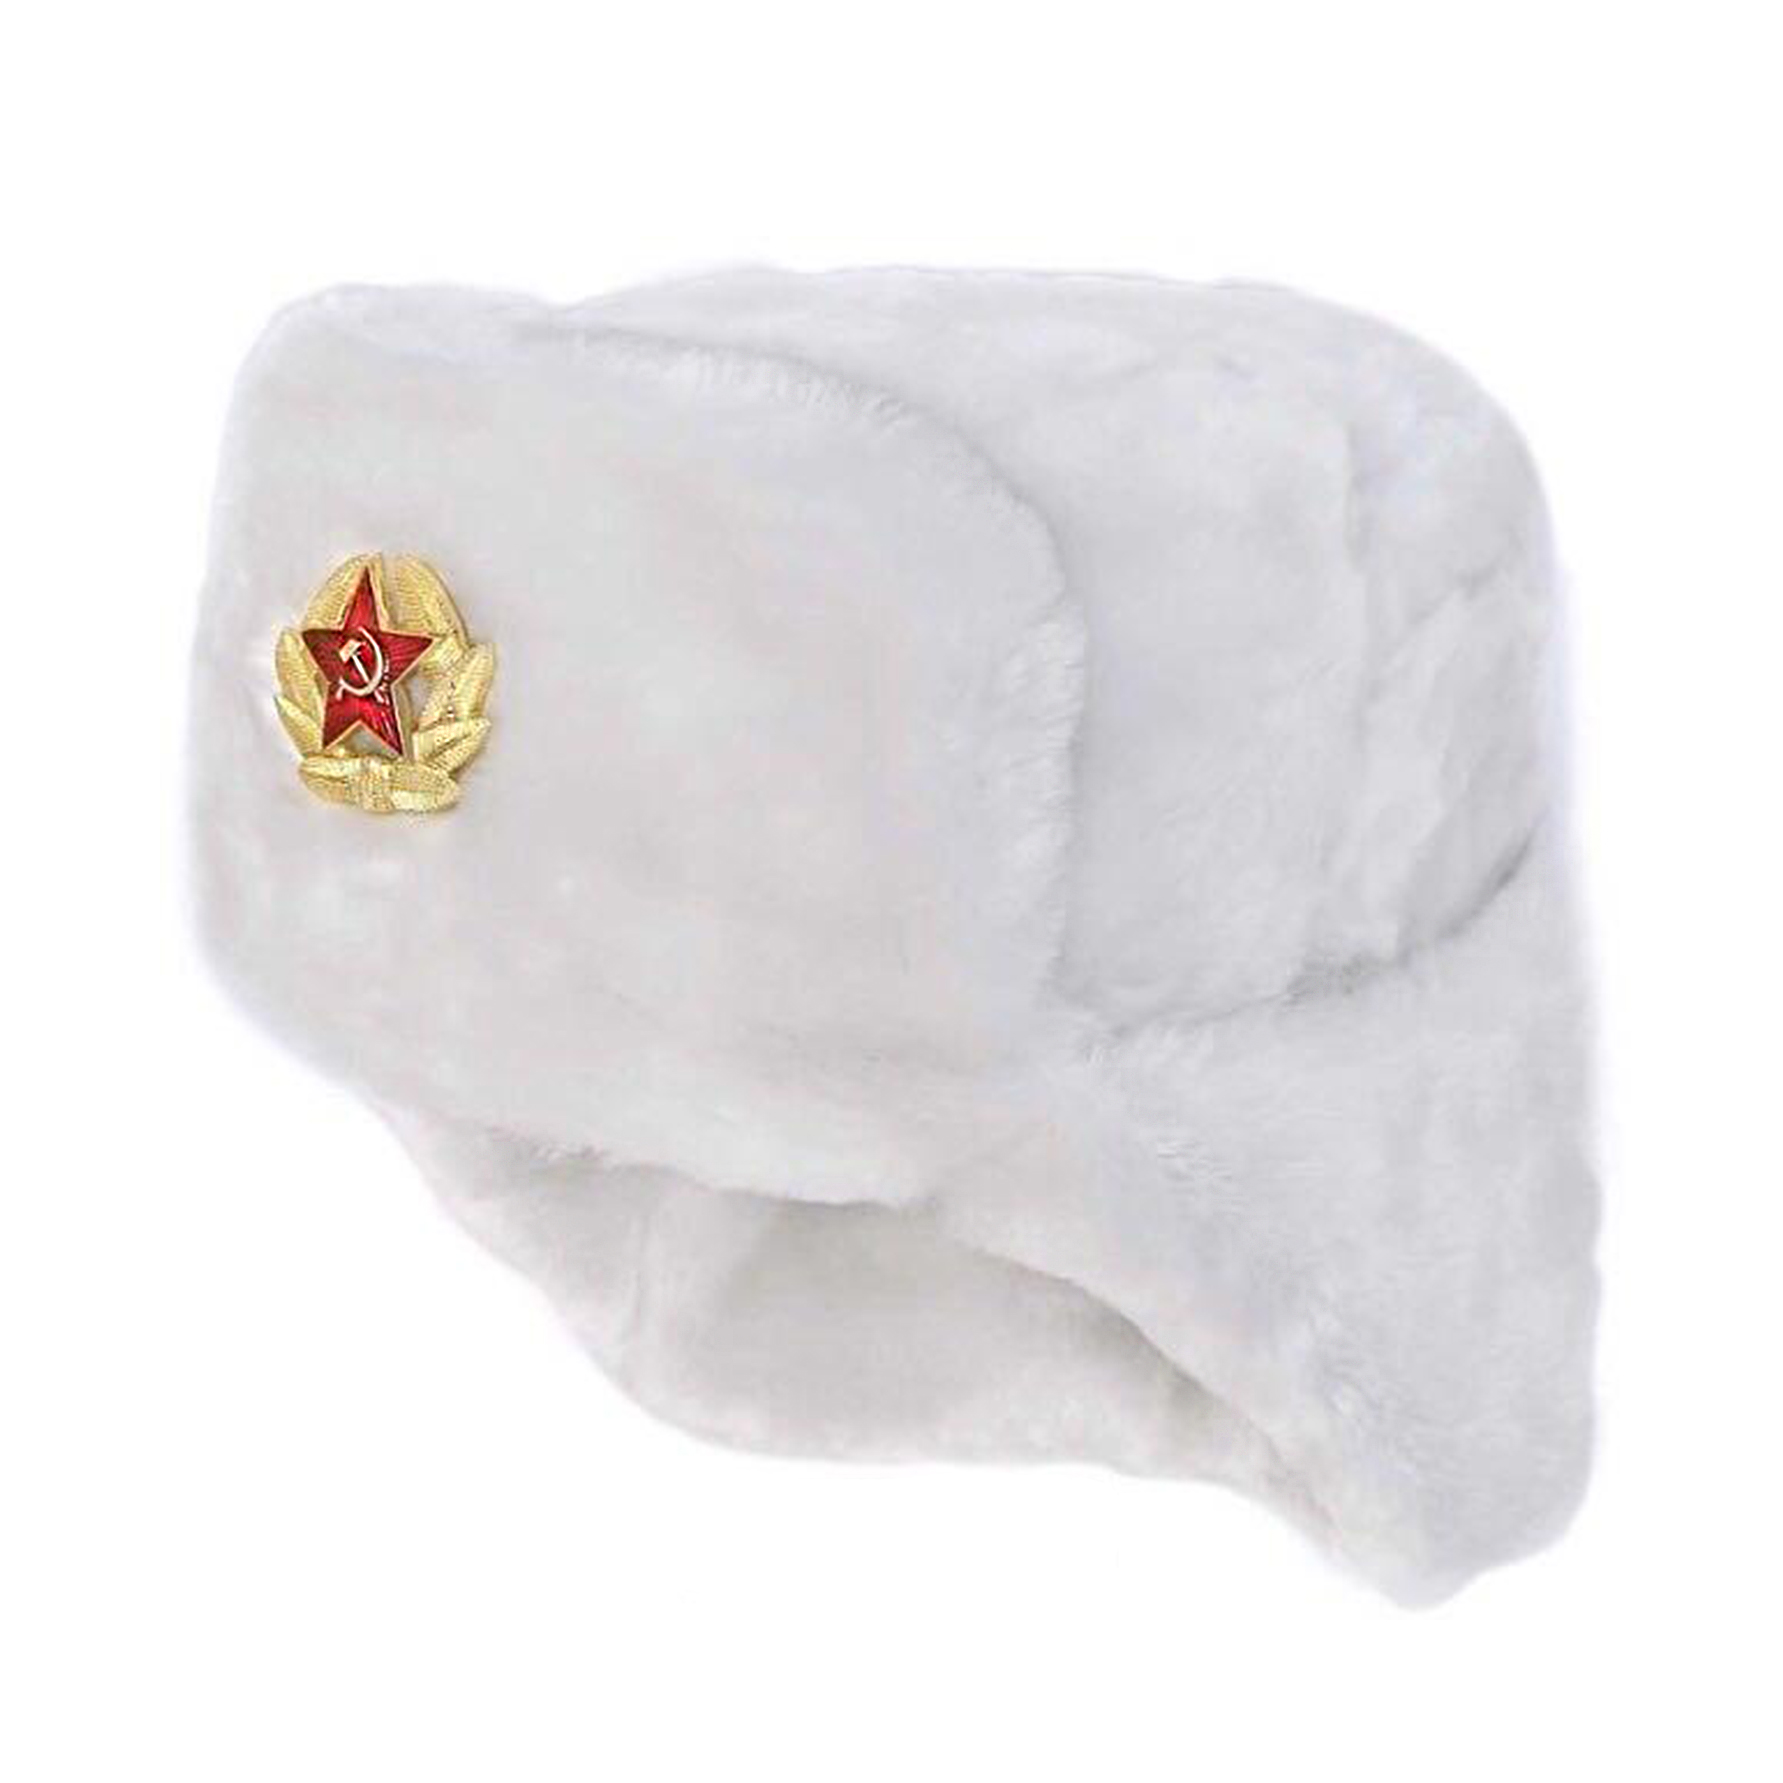 Ushanka, size 56/S. Russian Military Hat with Soviet Army Soldier Insignia, White